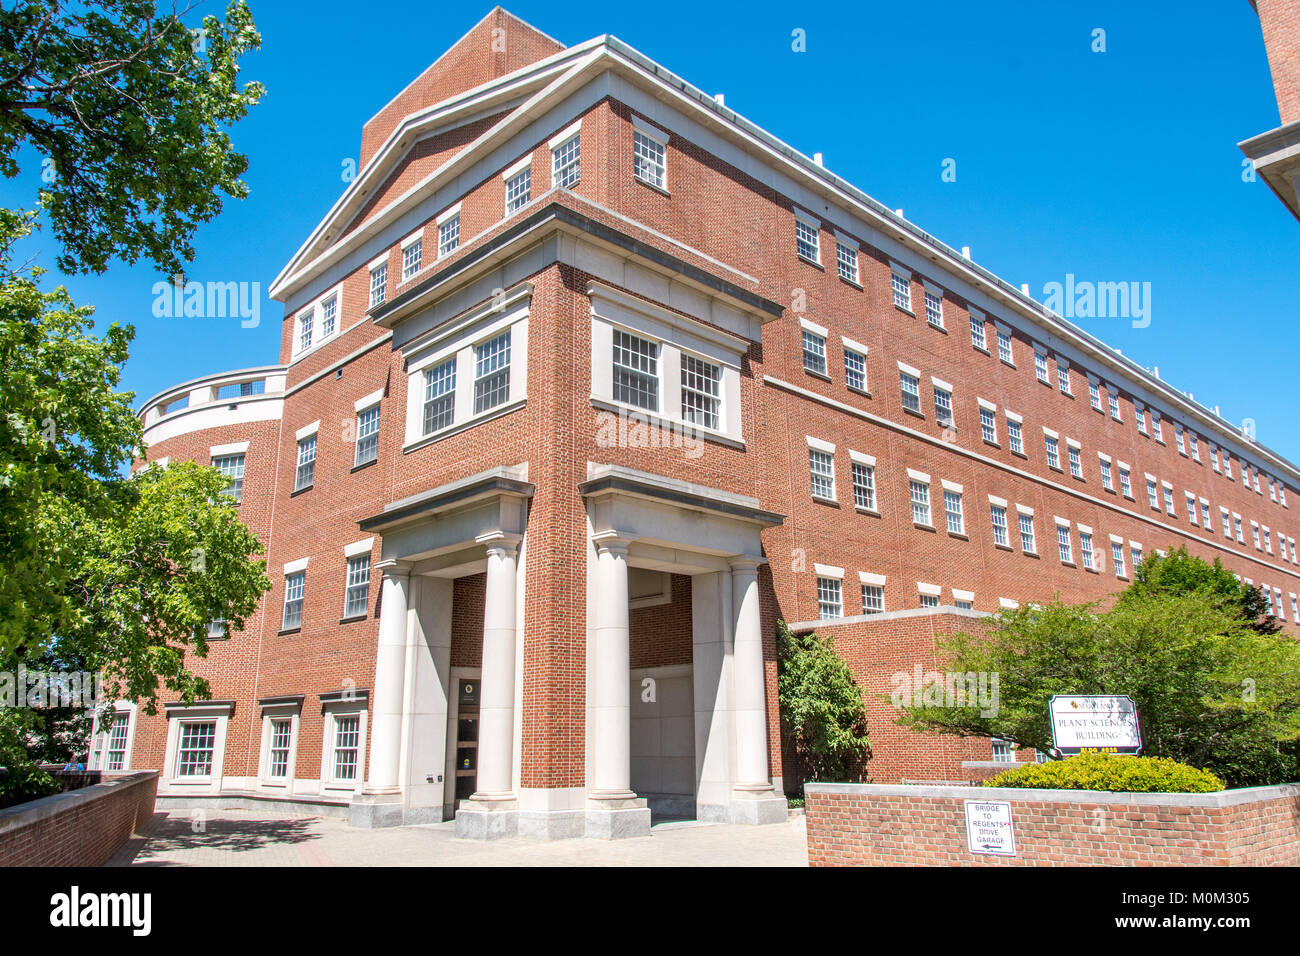 Exterior of brick building with copious windows stands out against clear blue skies on university campus, College Stock Photo